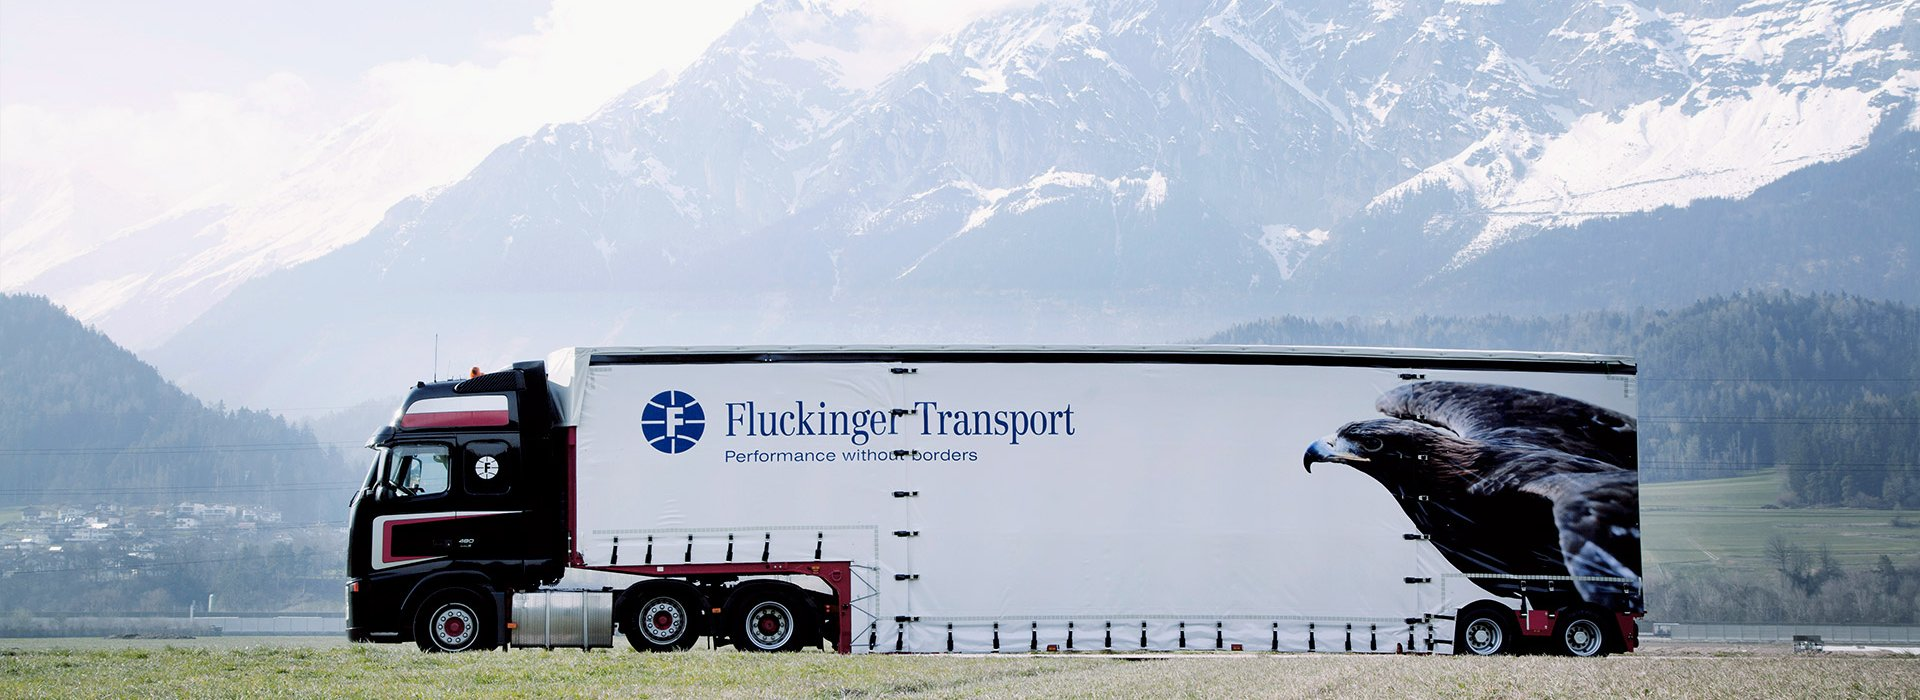 Fluckinger Transport LKW in Tirol